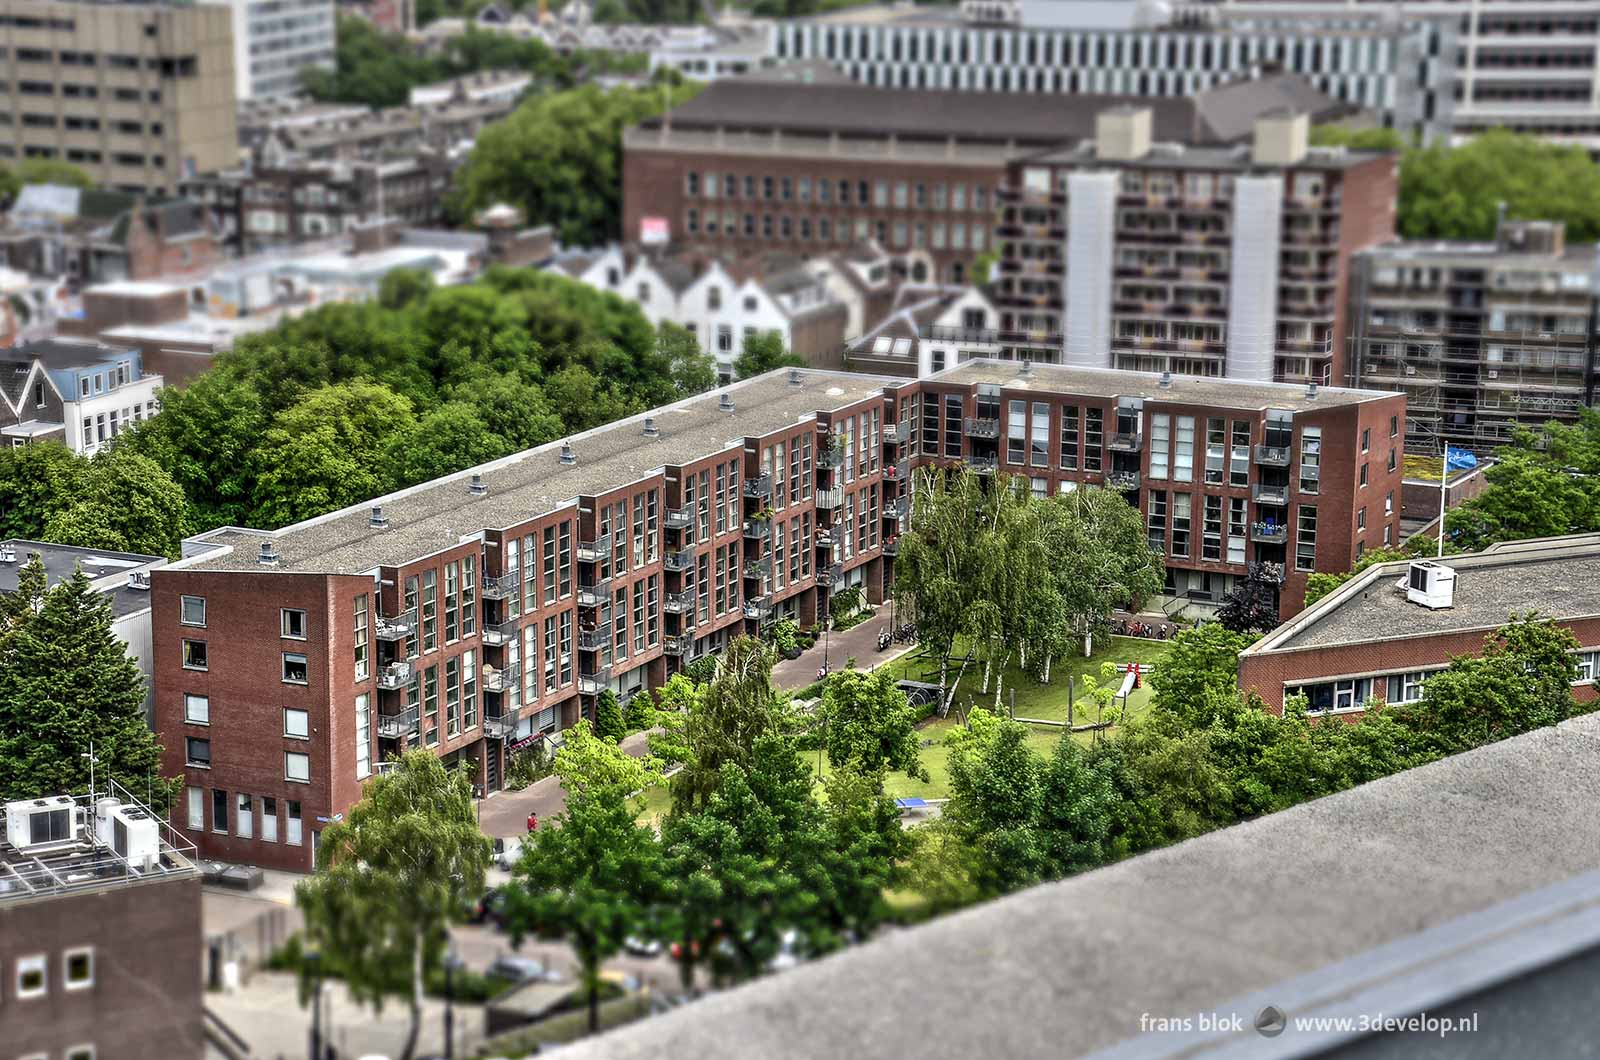 The Miniworld or Madurodam effect on a photo of Zuster Hennekeplein in Rotterdam